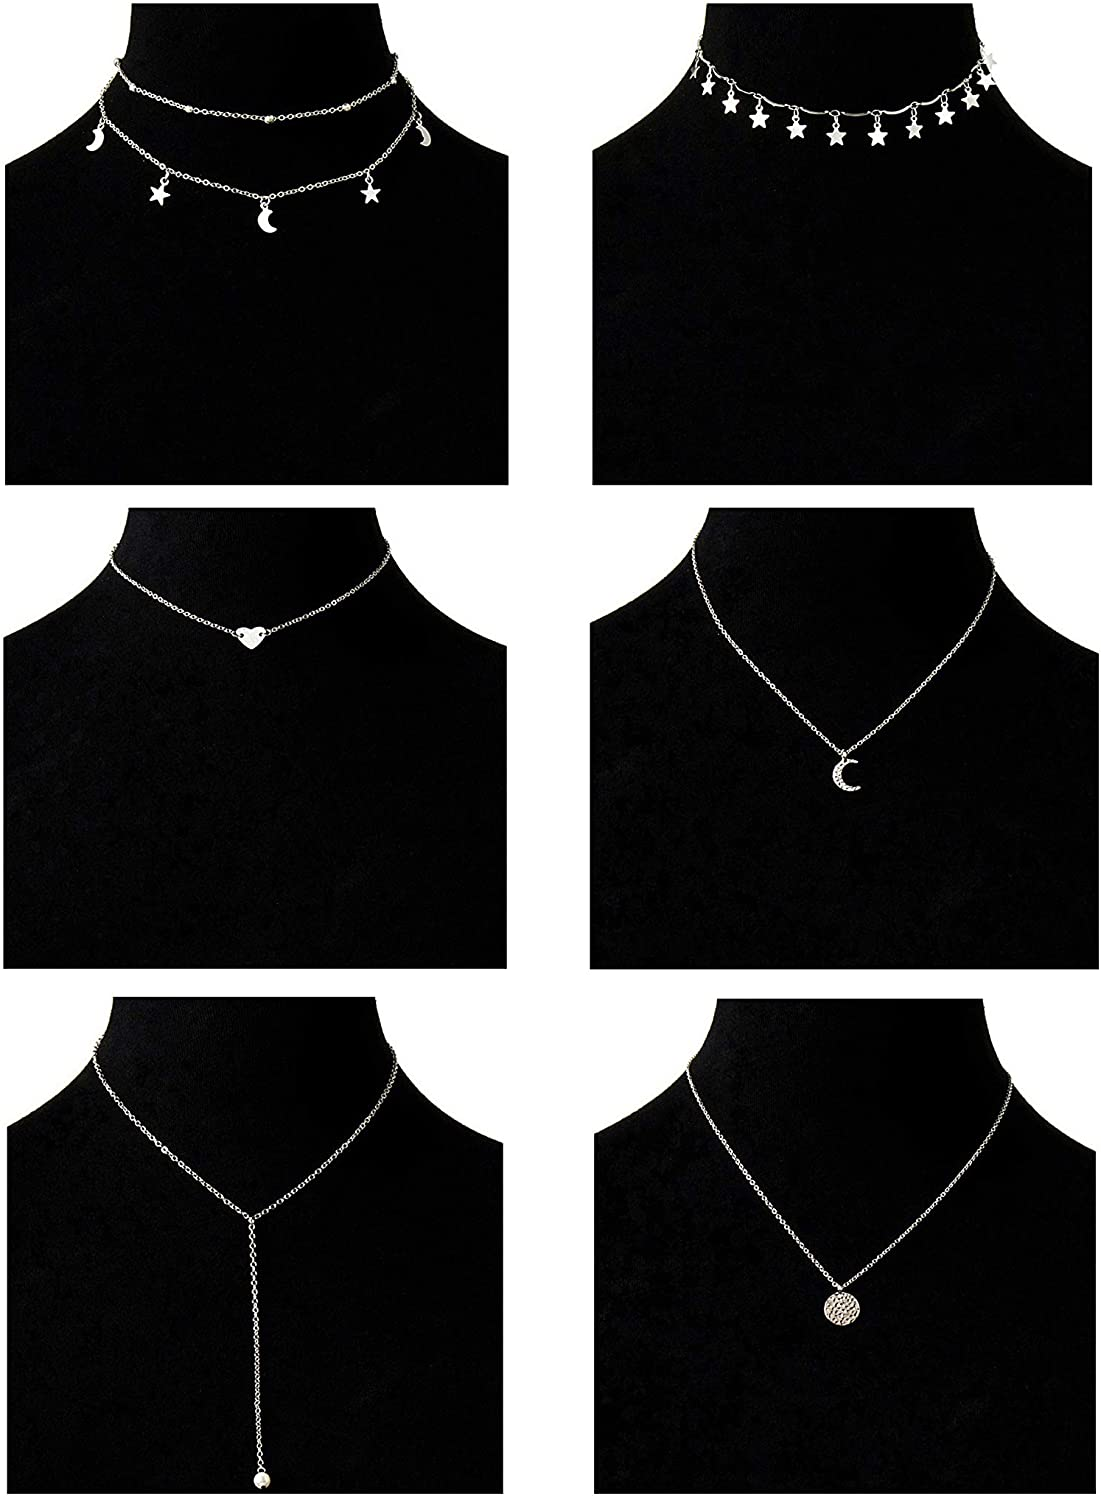 Masedy 6Pcs 18K Gold-plated Layered Pendant Choker Necklace Chain for Women Girls Moon Star Adjustable